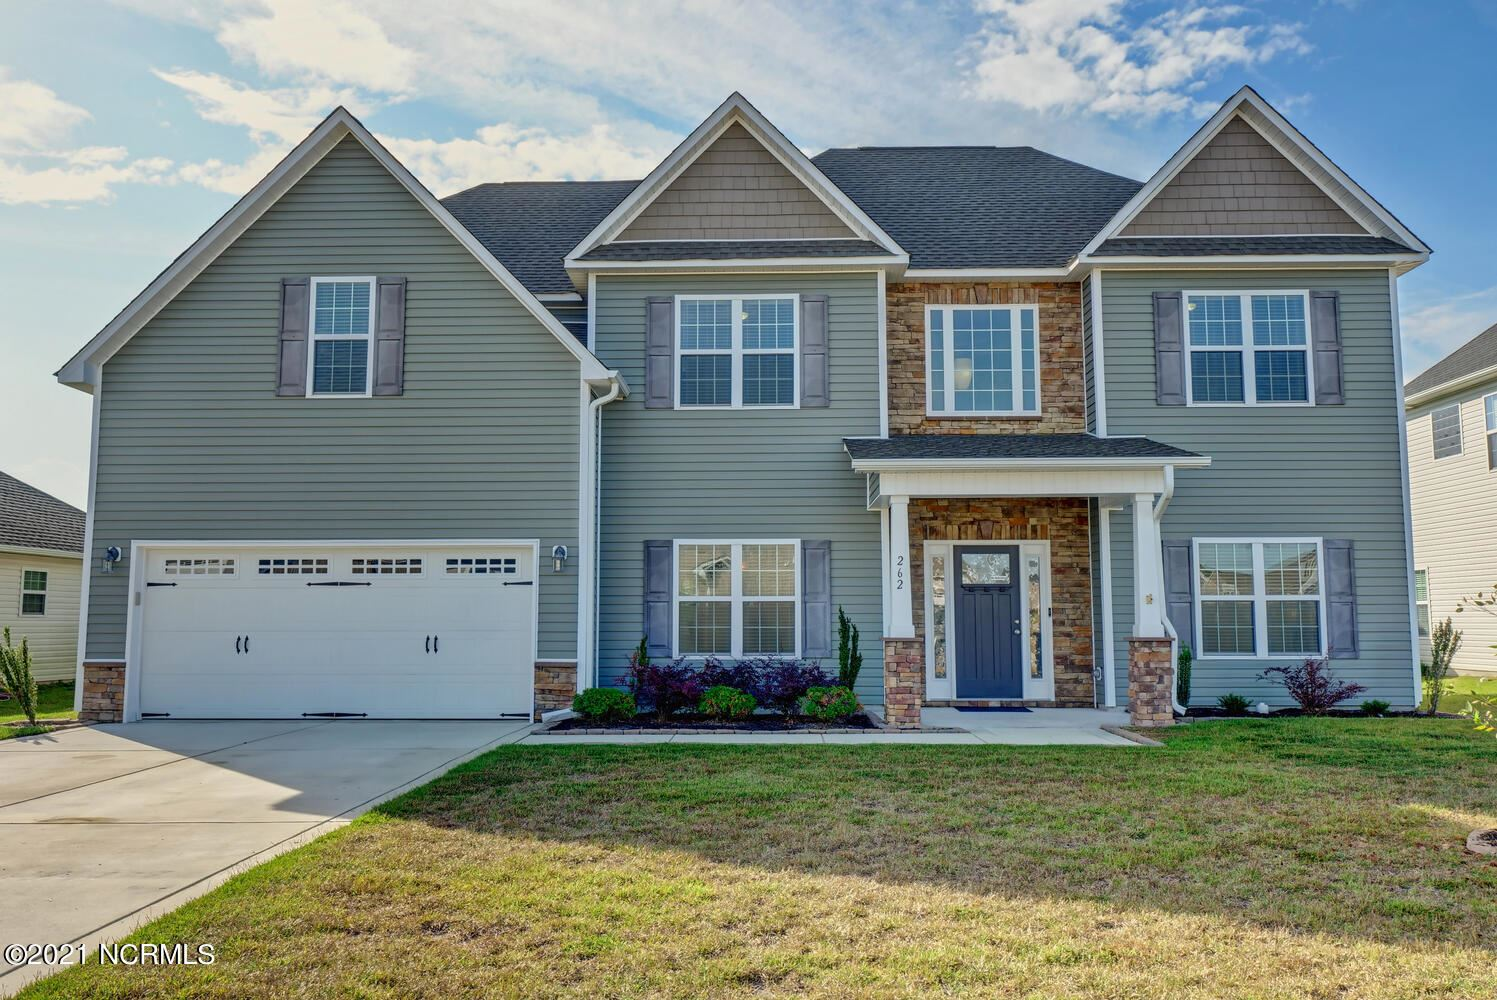 Photo of 262 Cuddy Court, Sneads Ferry, NC 28460 (MLS # 100291077)